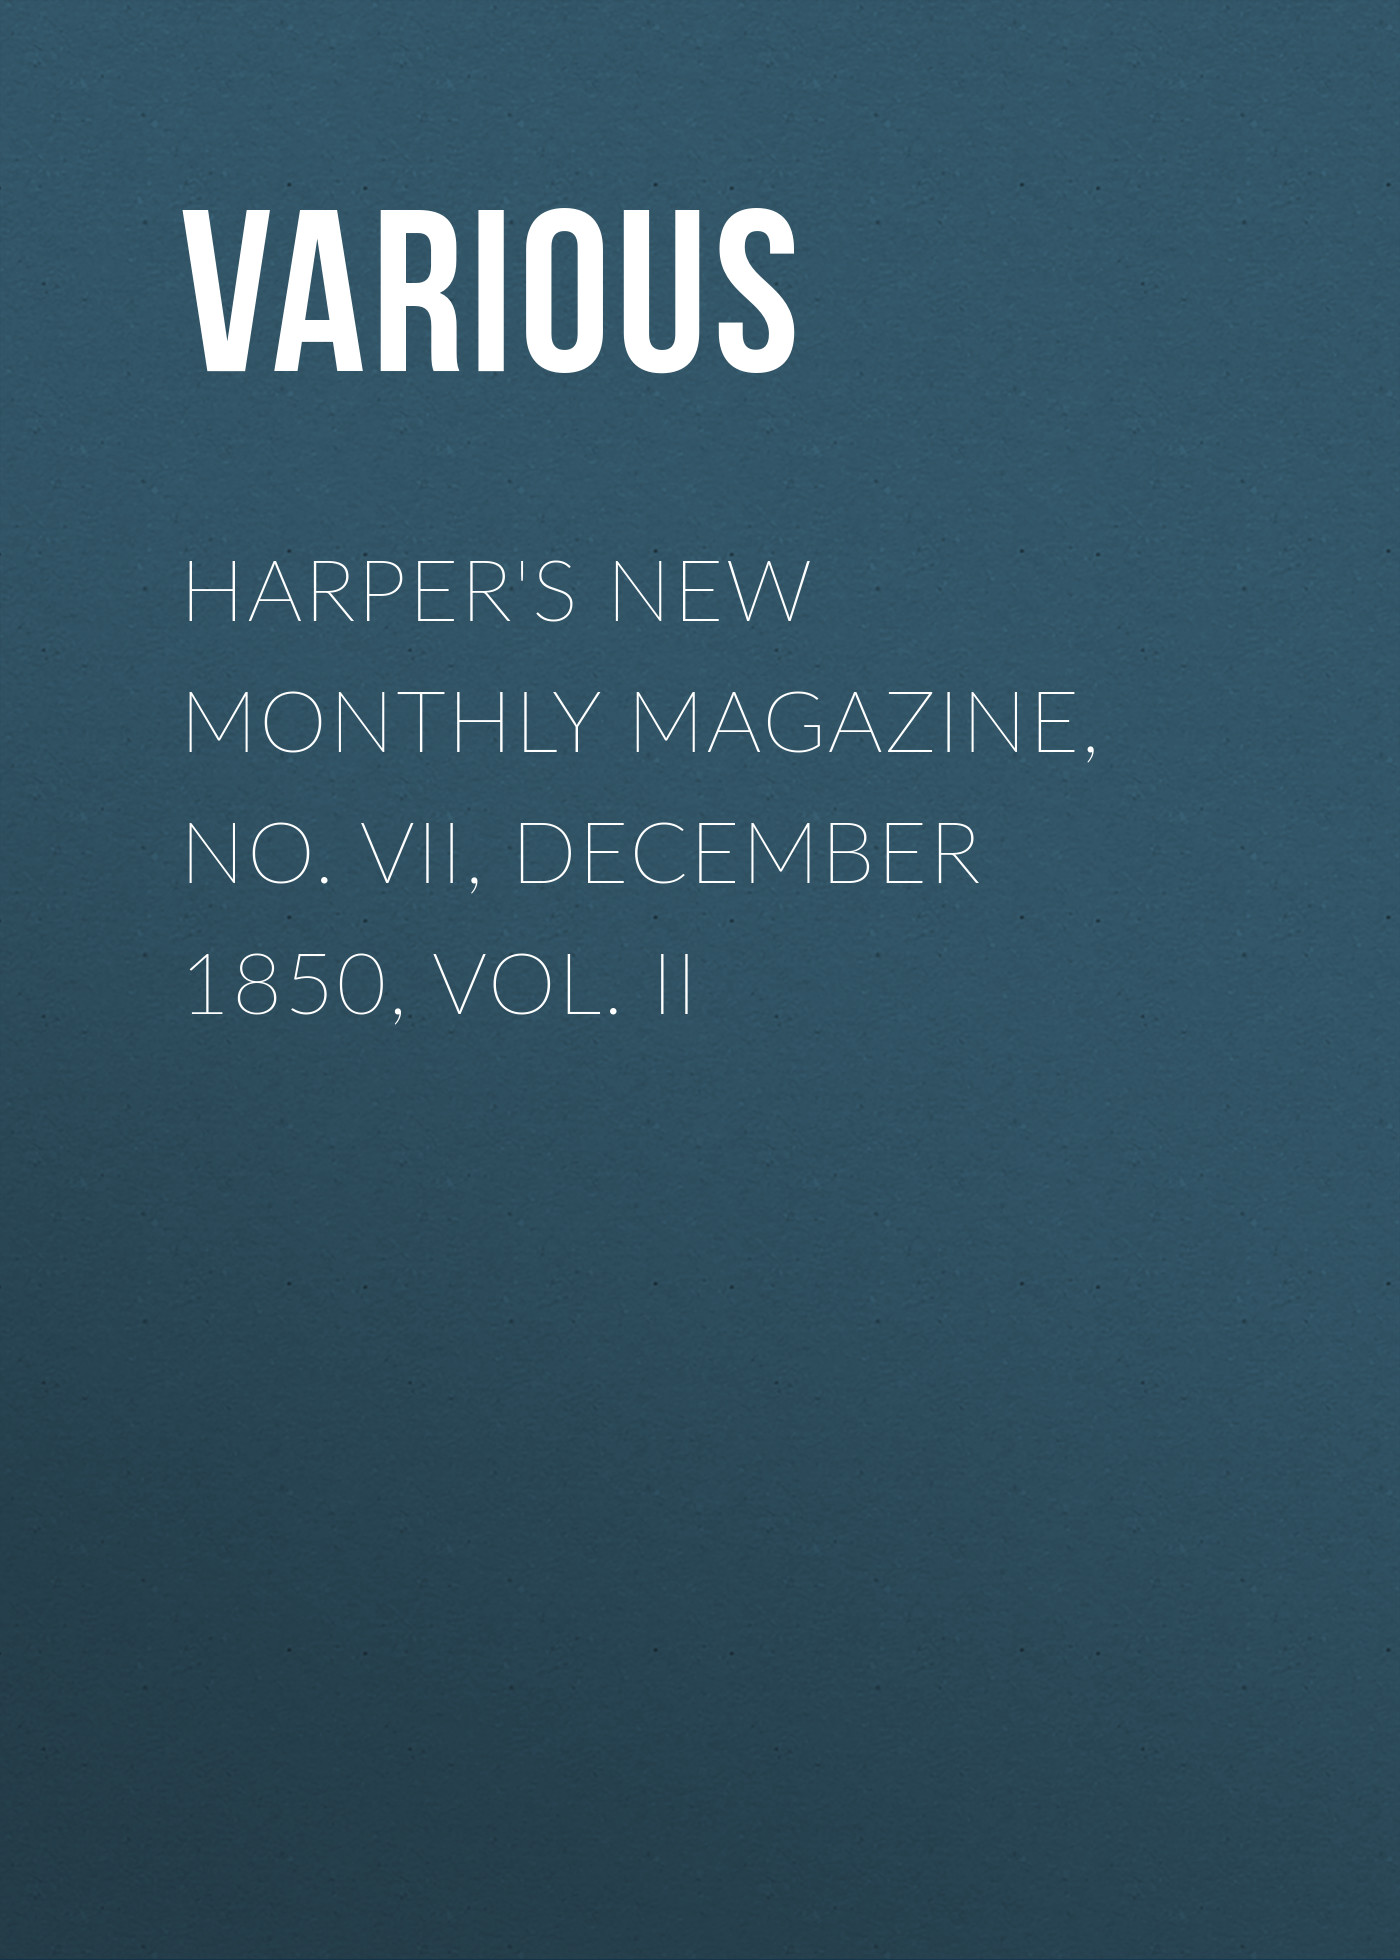 Фото - Various Harper's New Monthly Magazine, No. VII, December 1850, Vol. II various harper s new monthly magazine no xxiii april 1852 vol iv